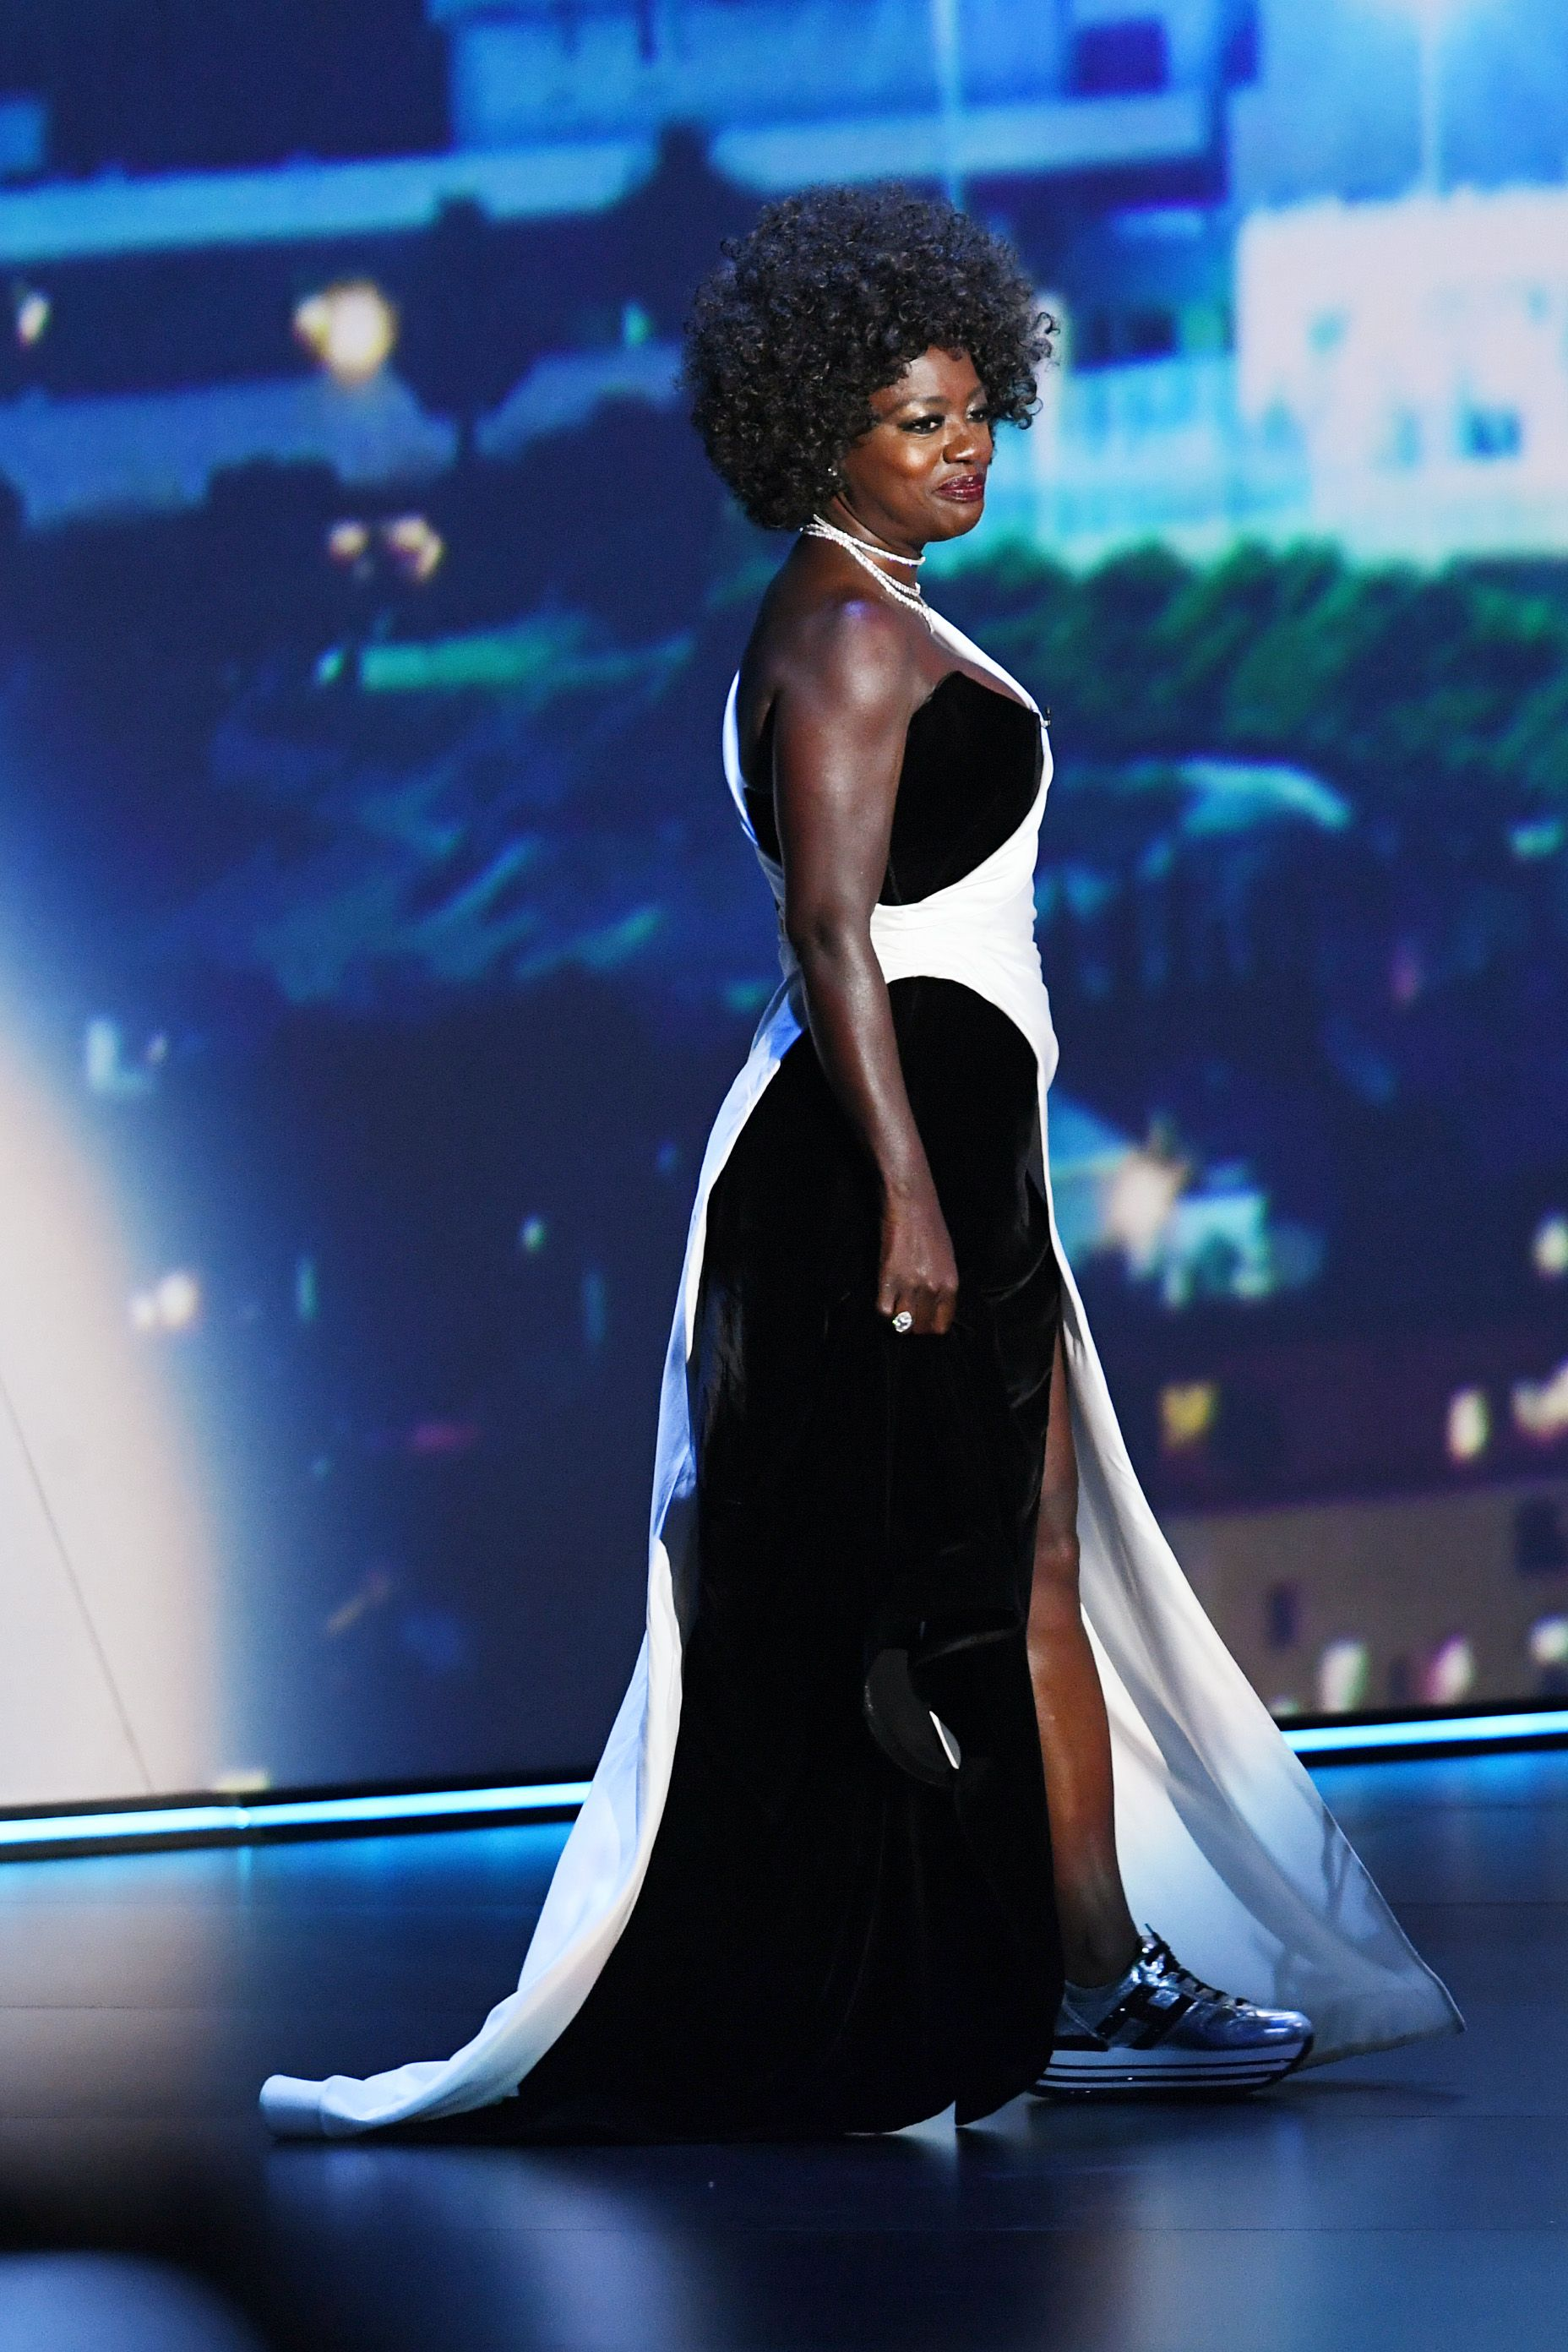 Viola Davis Changed From Heels To Sneakers To Present An Award At The Emmy's